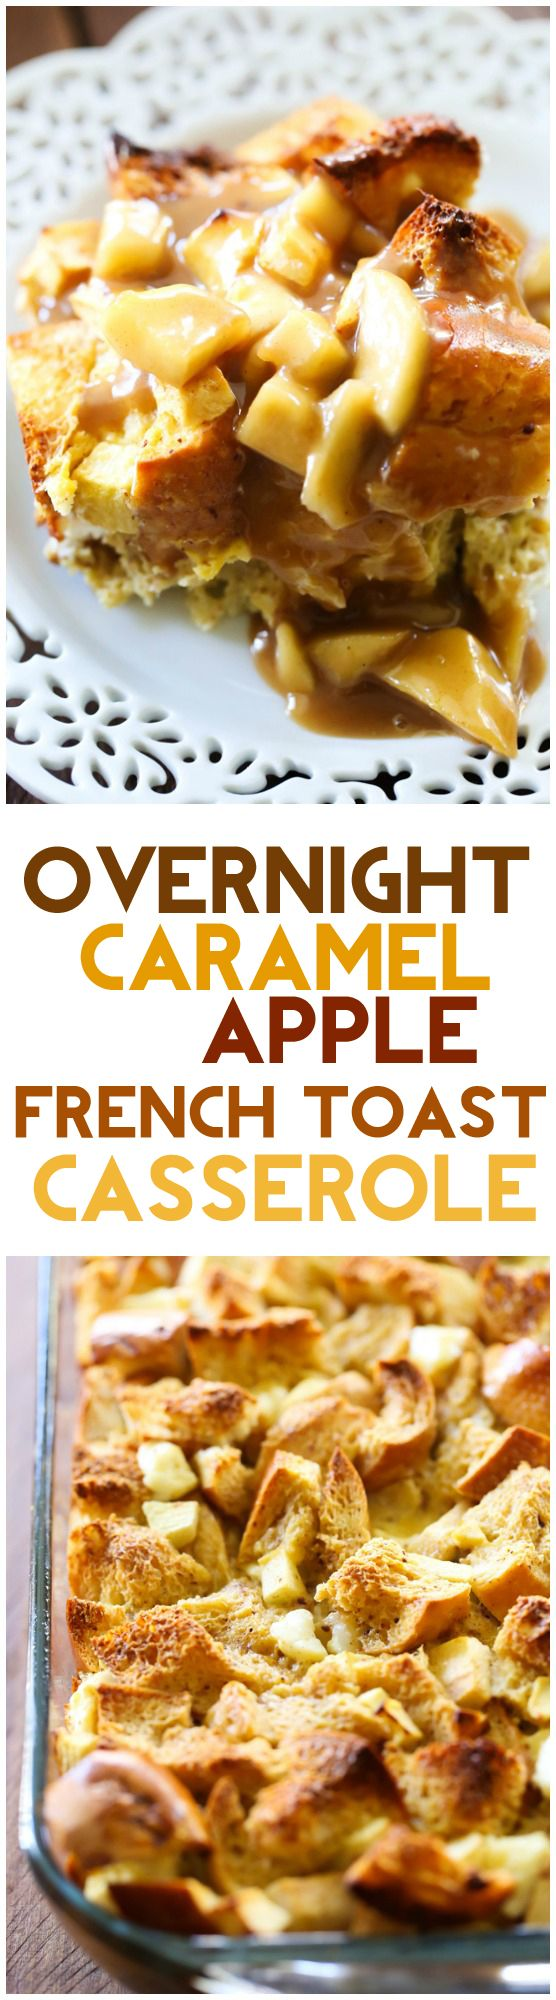 Overnight Caramel Apple French Toast Casserole... This is one INCREDIBLE breakfast! All the prep work is done the night before and ready to pop in the oven in the morning! The caramel apple flavor is in each and every bite and the syrup is phenomenal!